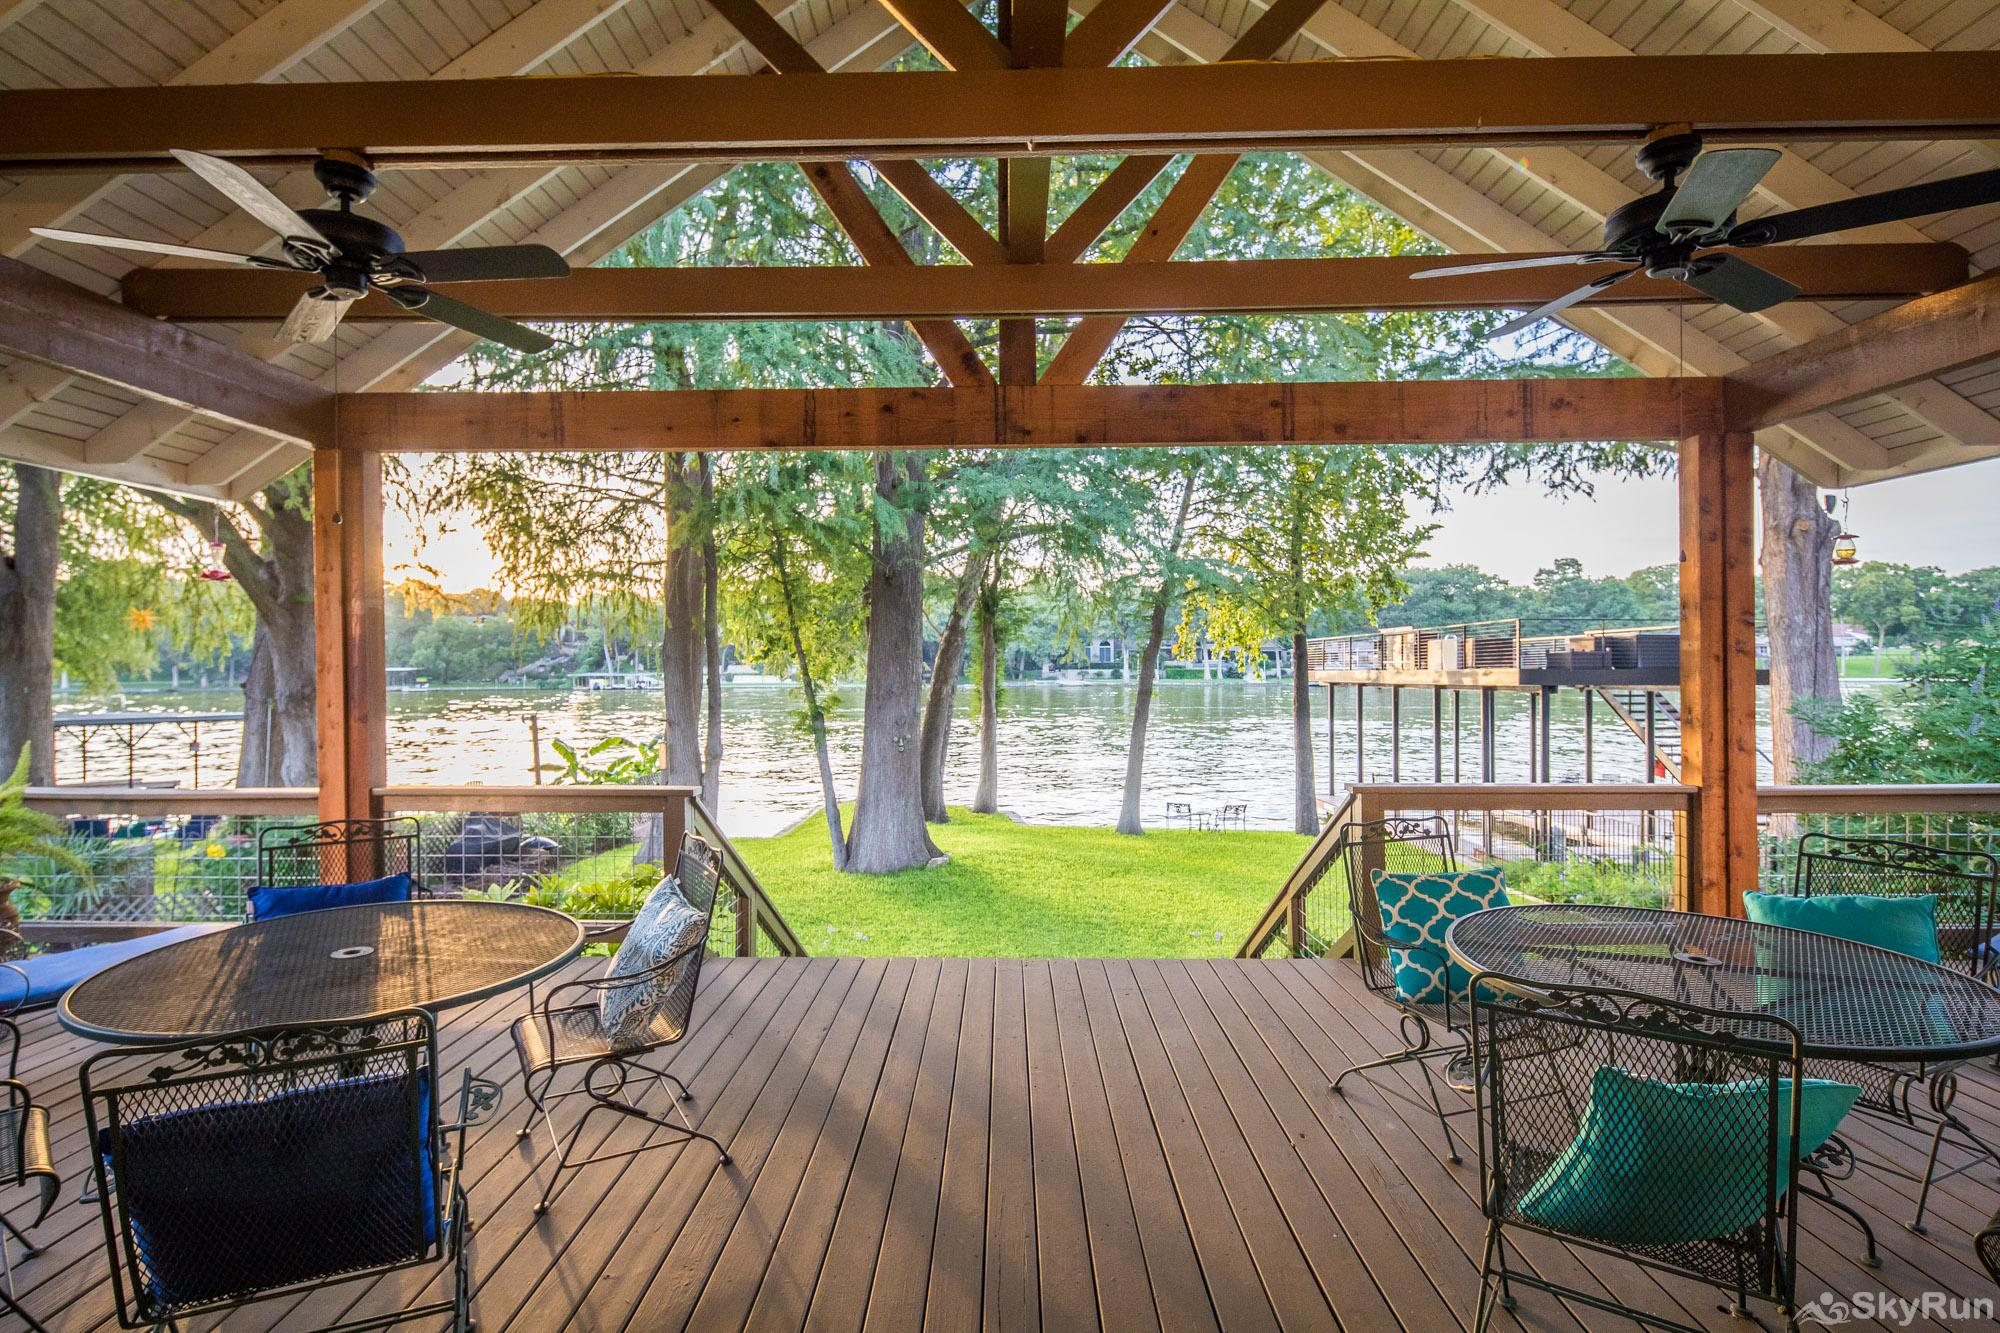 SERENITY SHORES Relaxing River View and Ample Seating on Deck